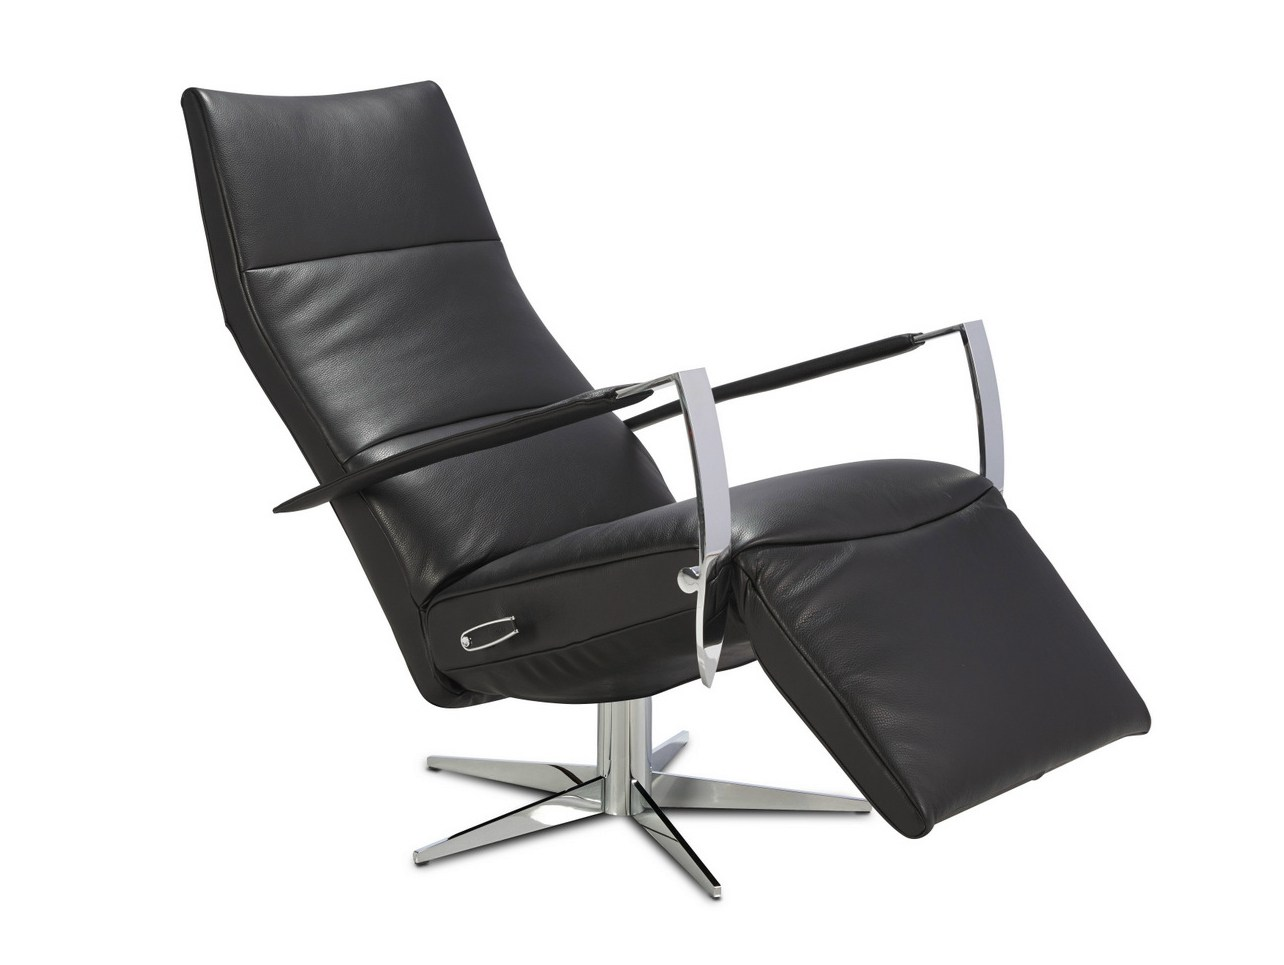 Fauteuil inclinable confortable - Fauteuil inclinable design ...